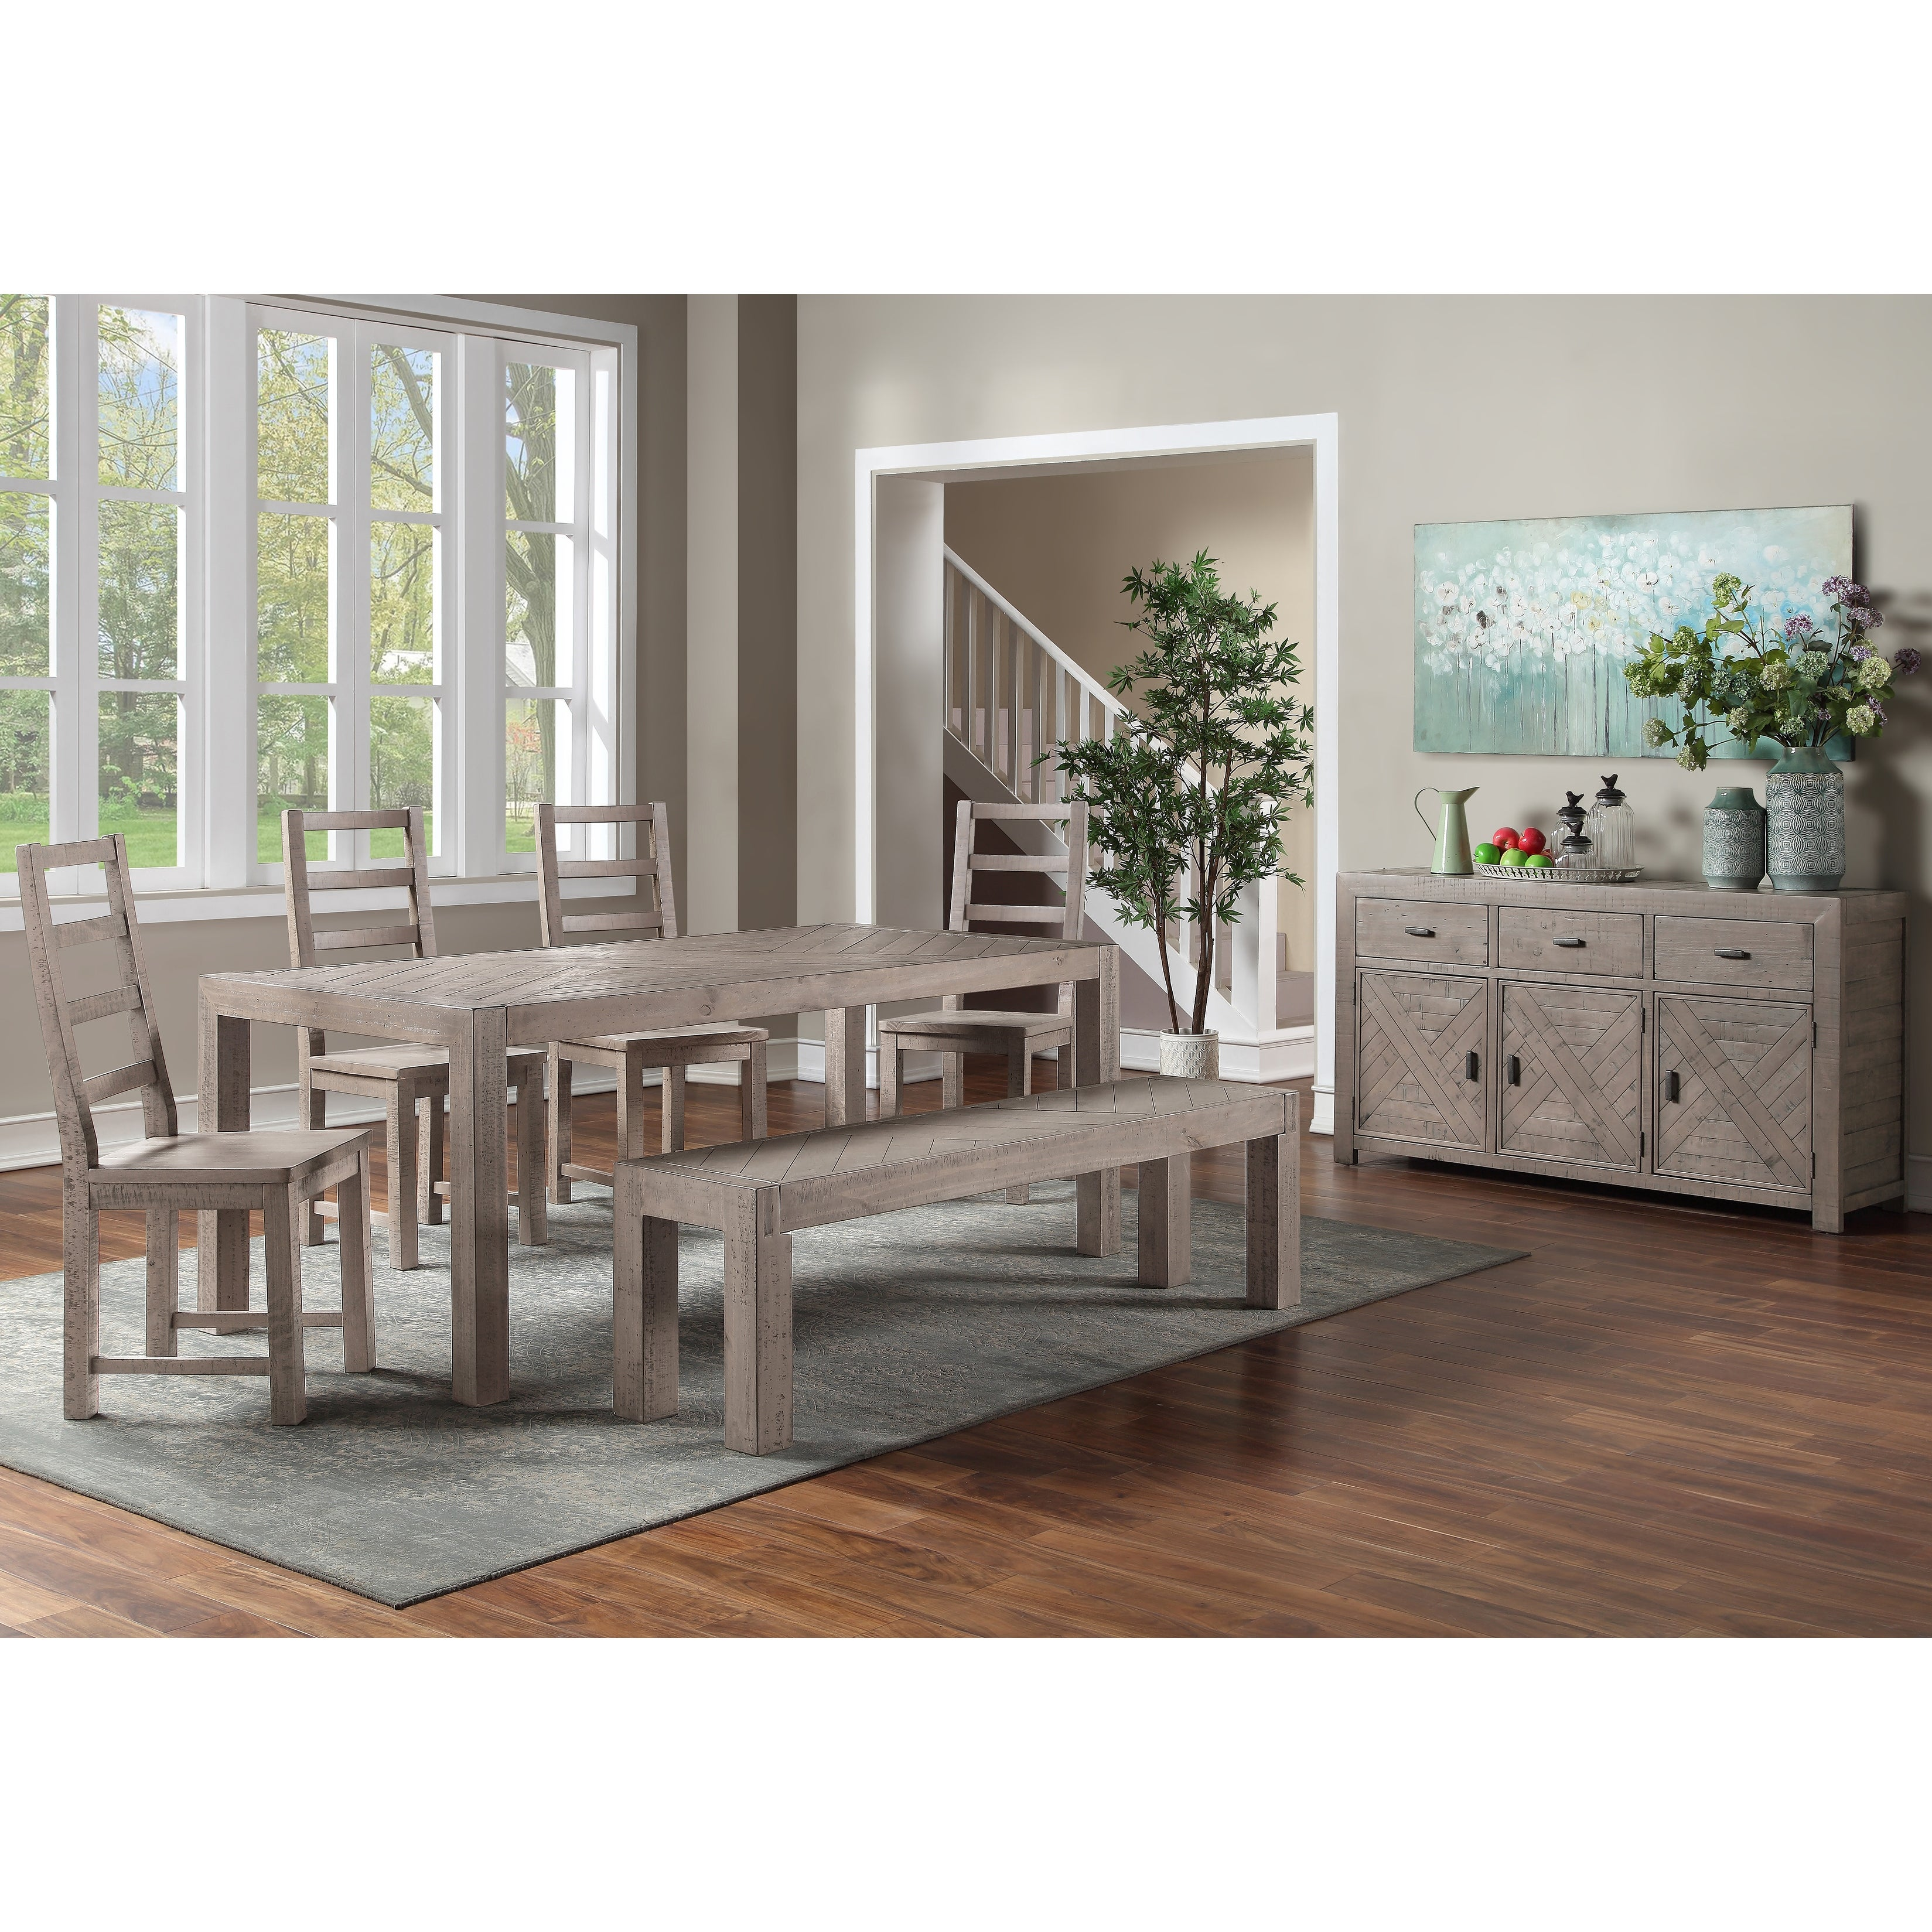 The Gray Barn Aubree Reclaimed 7 Piece Dining Set Overstock 32523566